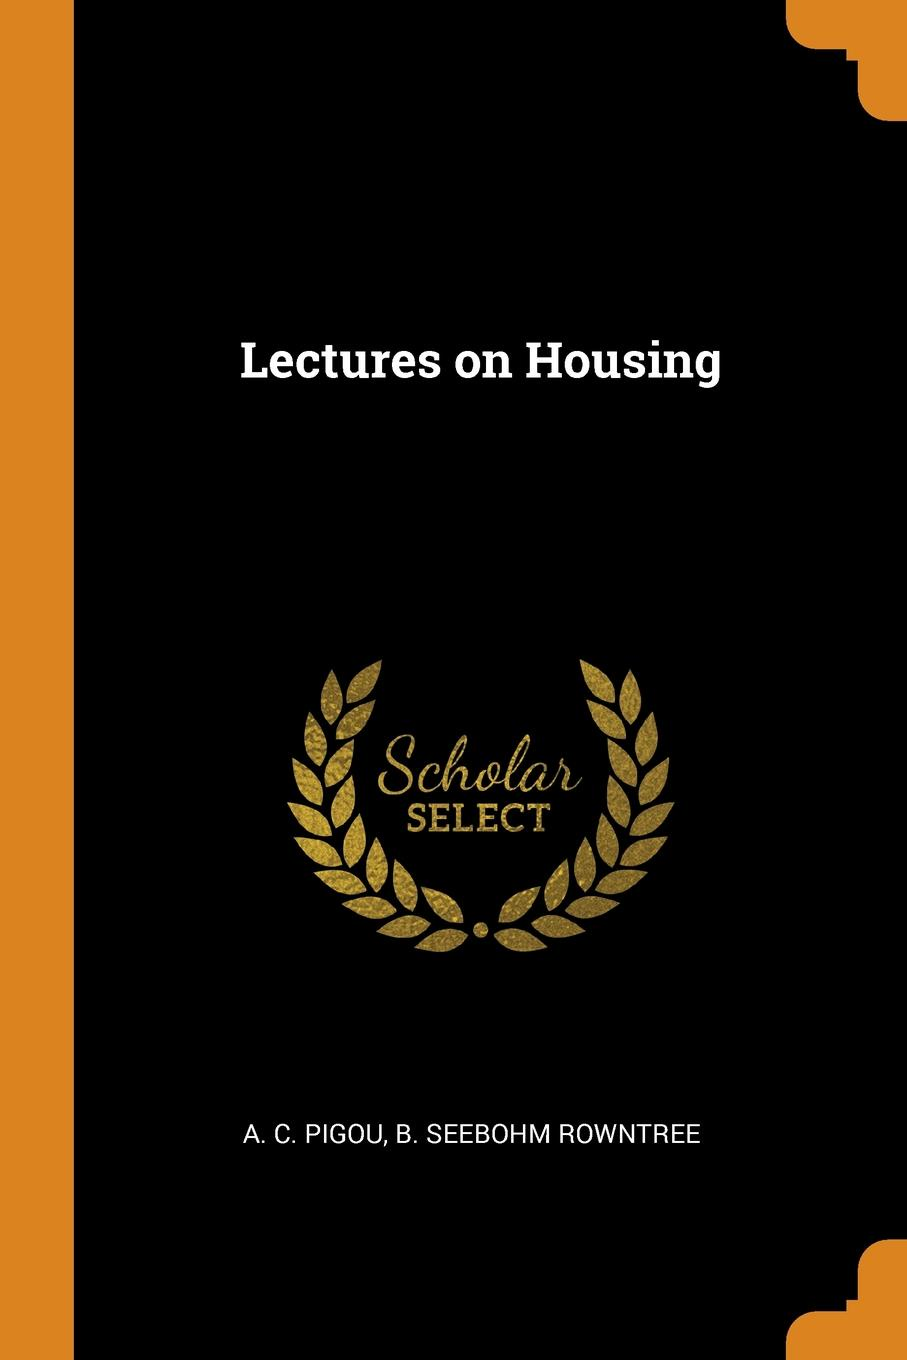 A. C. Pigou, B. Seebohm Rowntree Lectures on Housing шкаф для ванной the united states housing